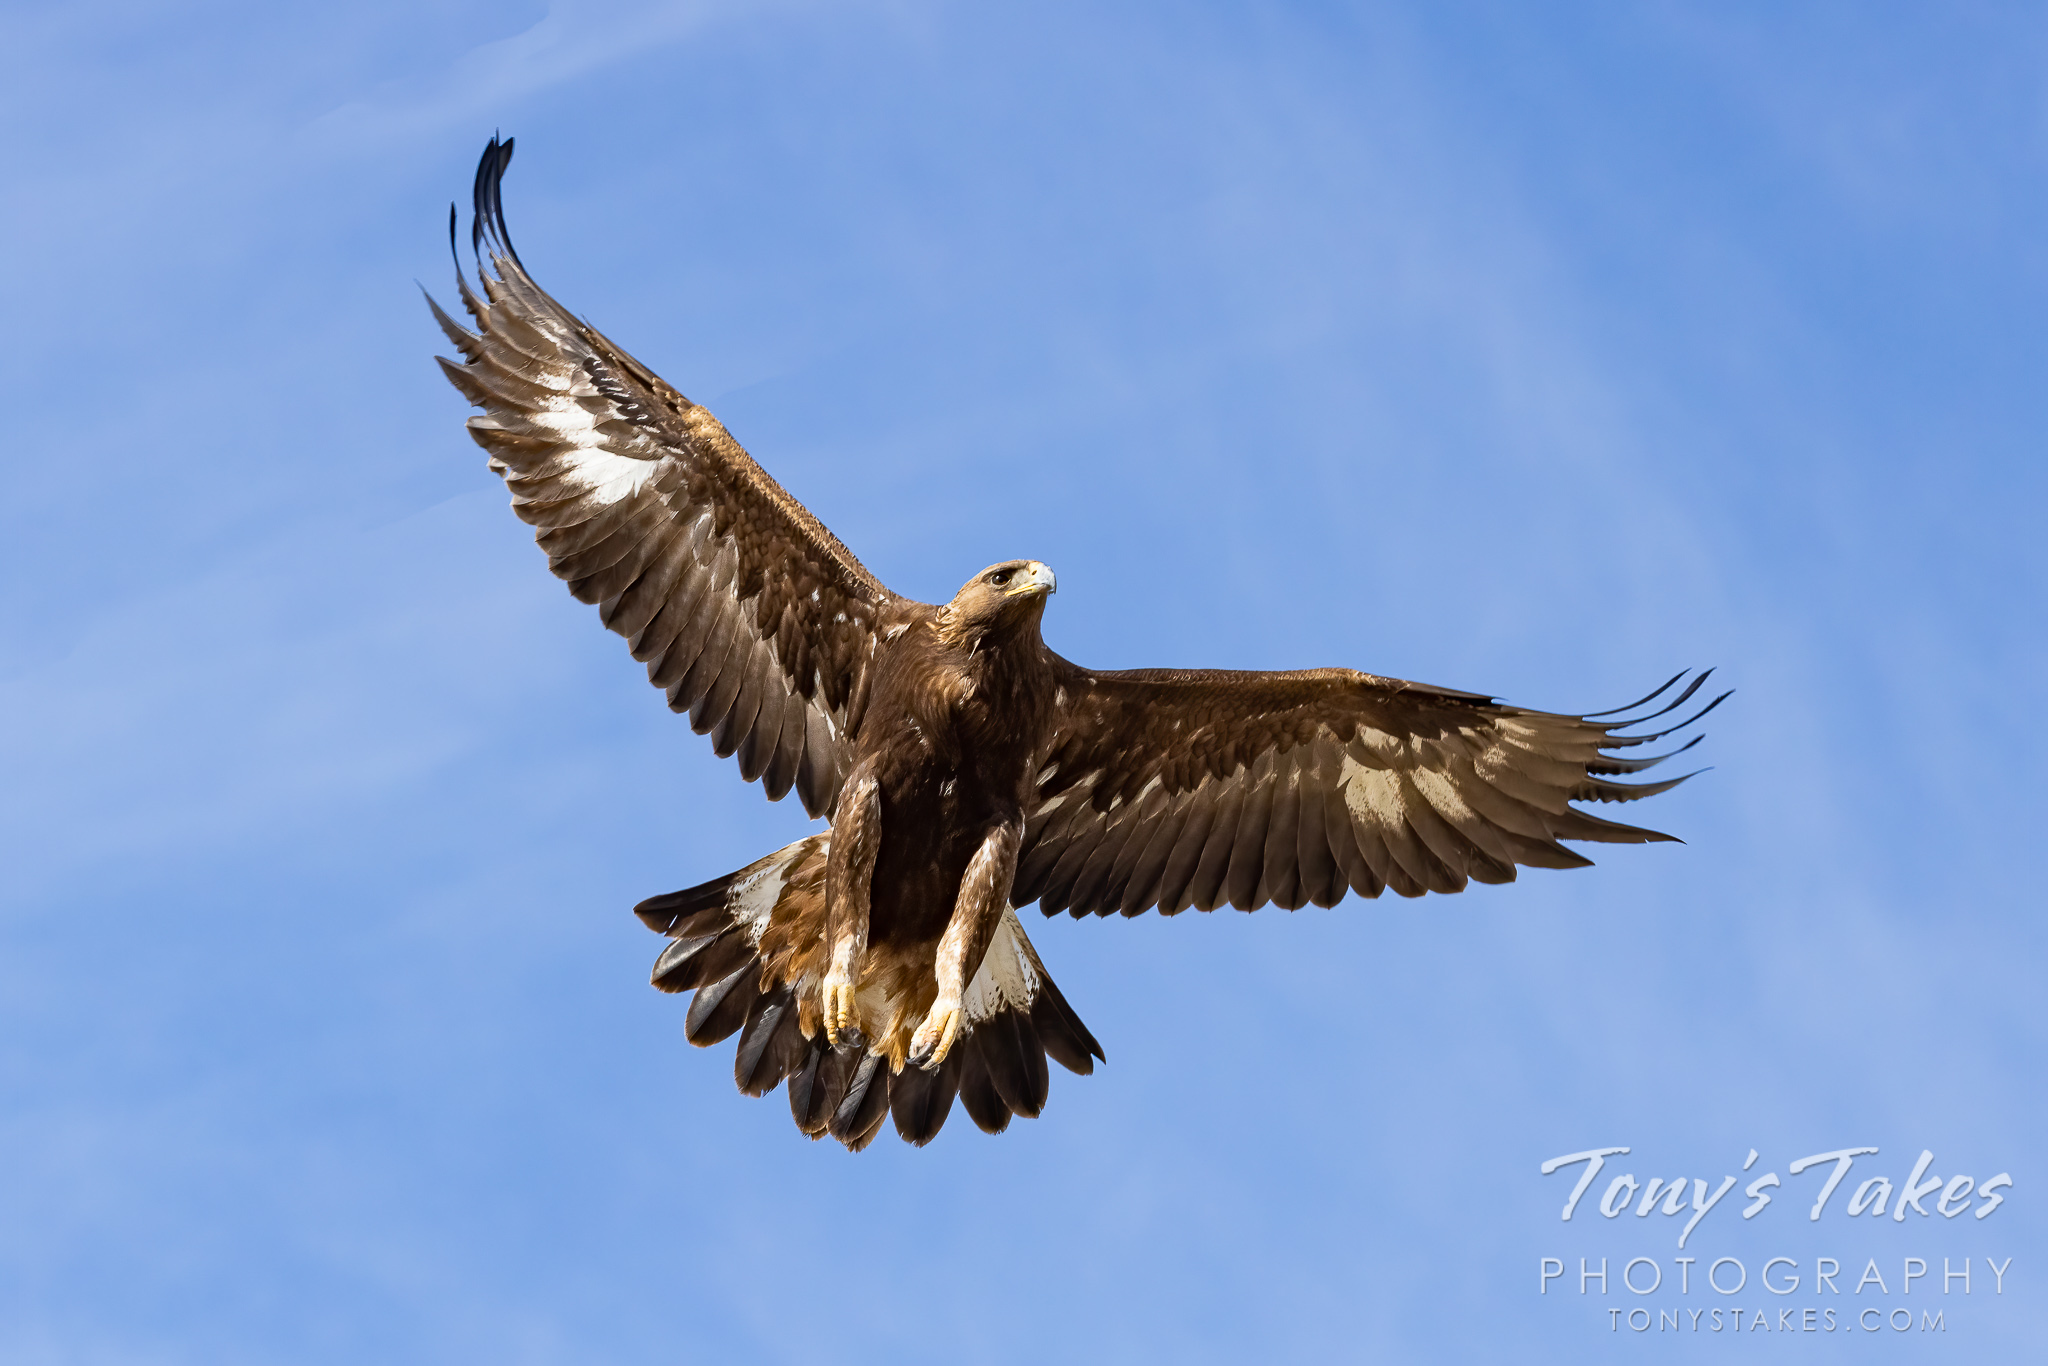 Young golden eagle takes flight for Wings Wednesday